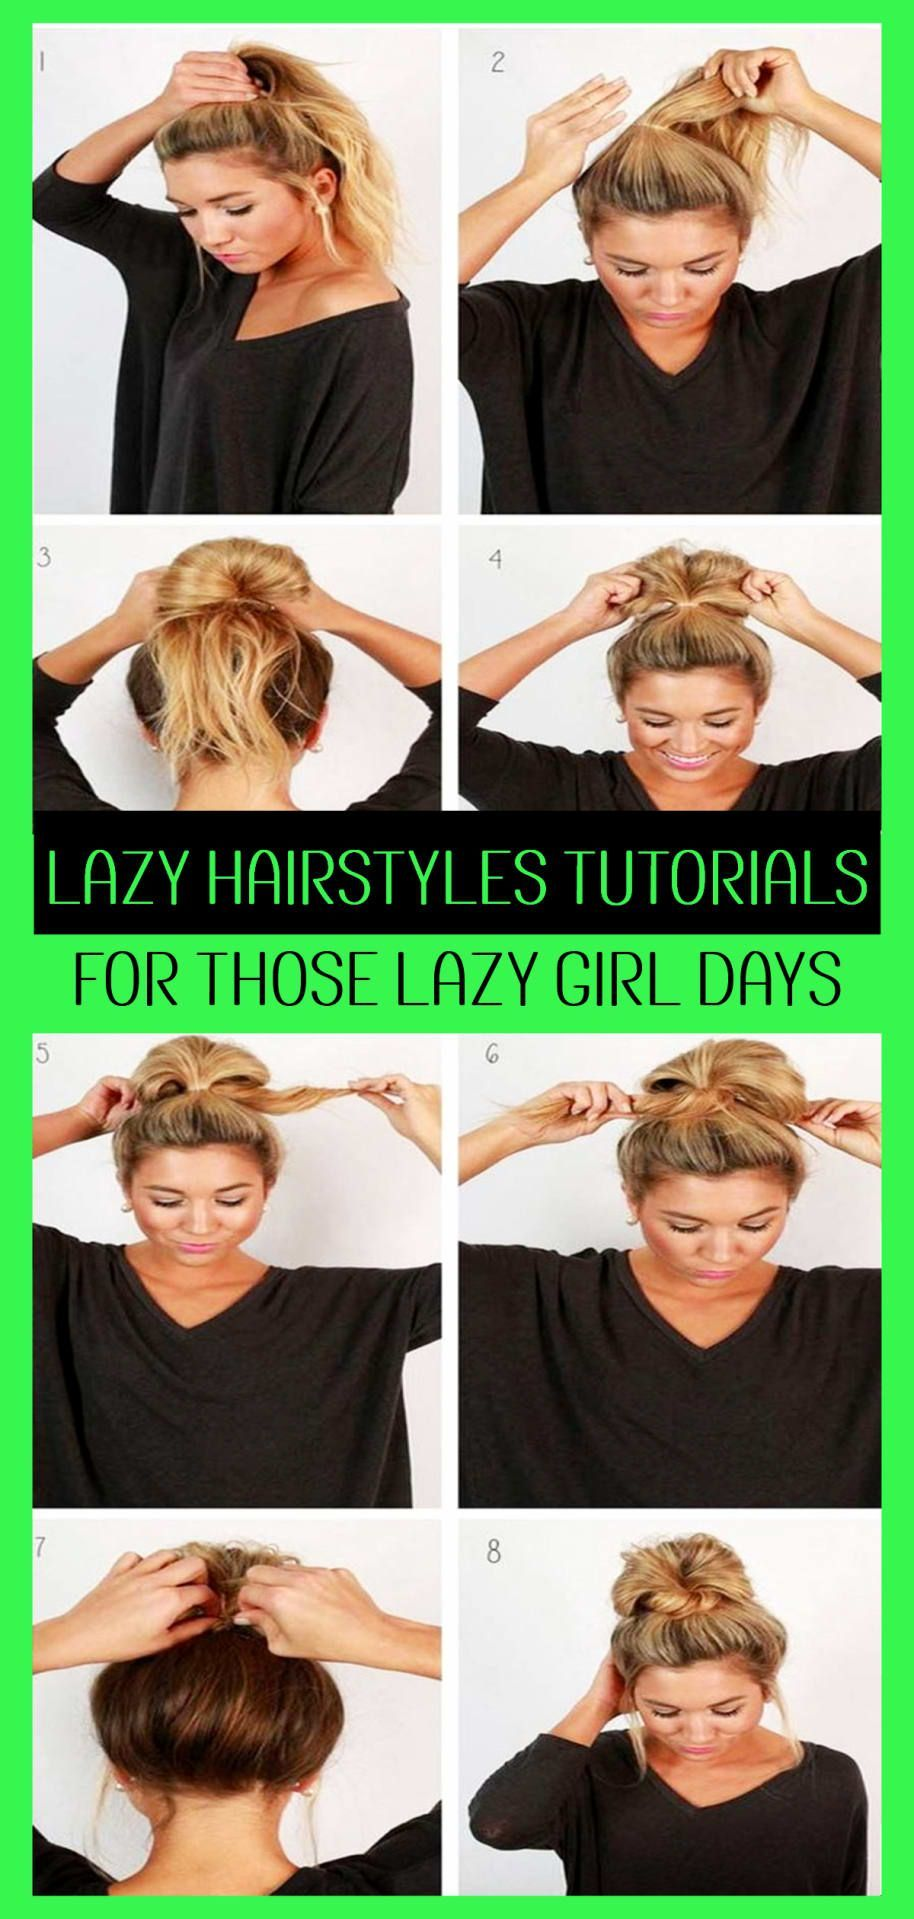 Lazy Hairstyles Quick Messy Lazy Hairstyles For School Or For Work Easy Messy Bun Hairstyles Lazy Hairstyles Easy Everyday Hairstyles Lazy Girl Hairstyles